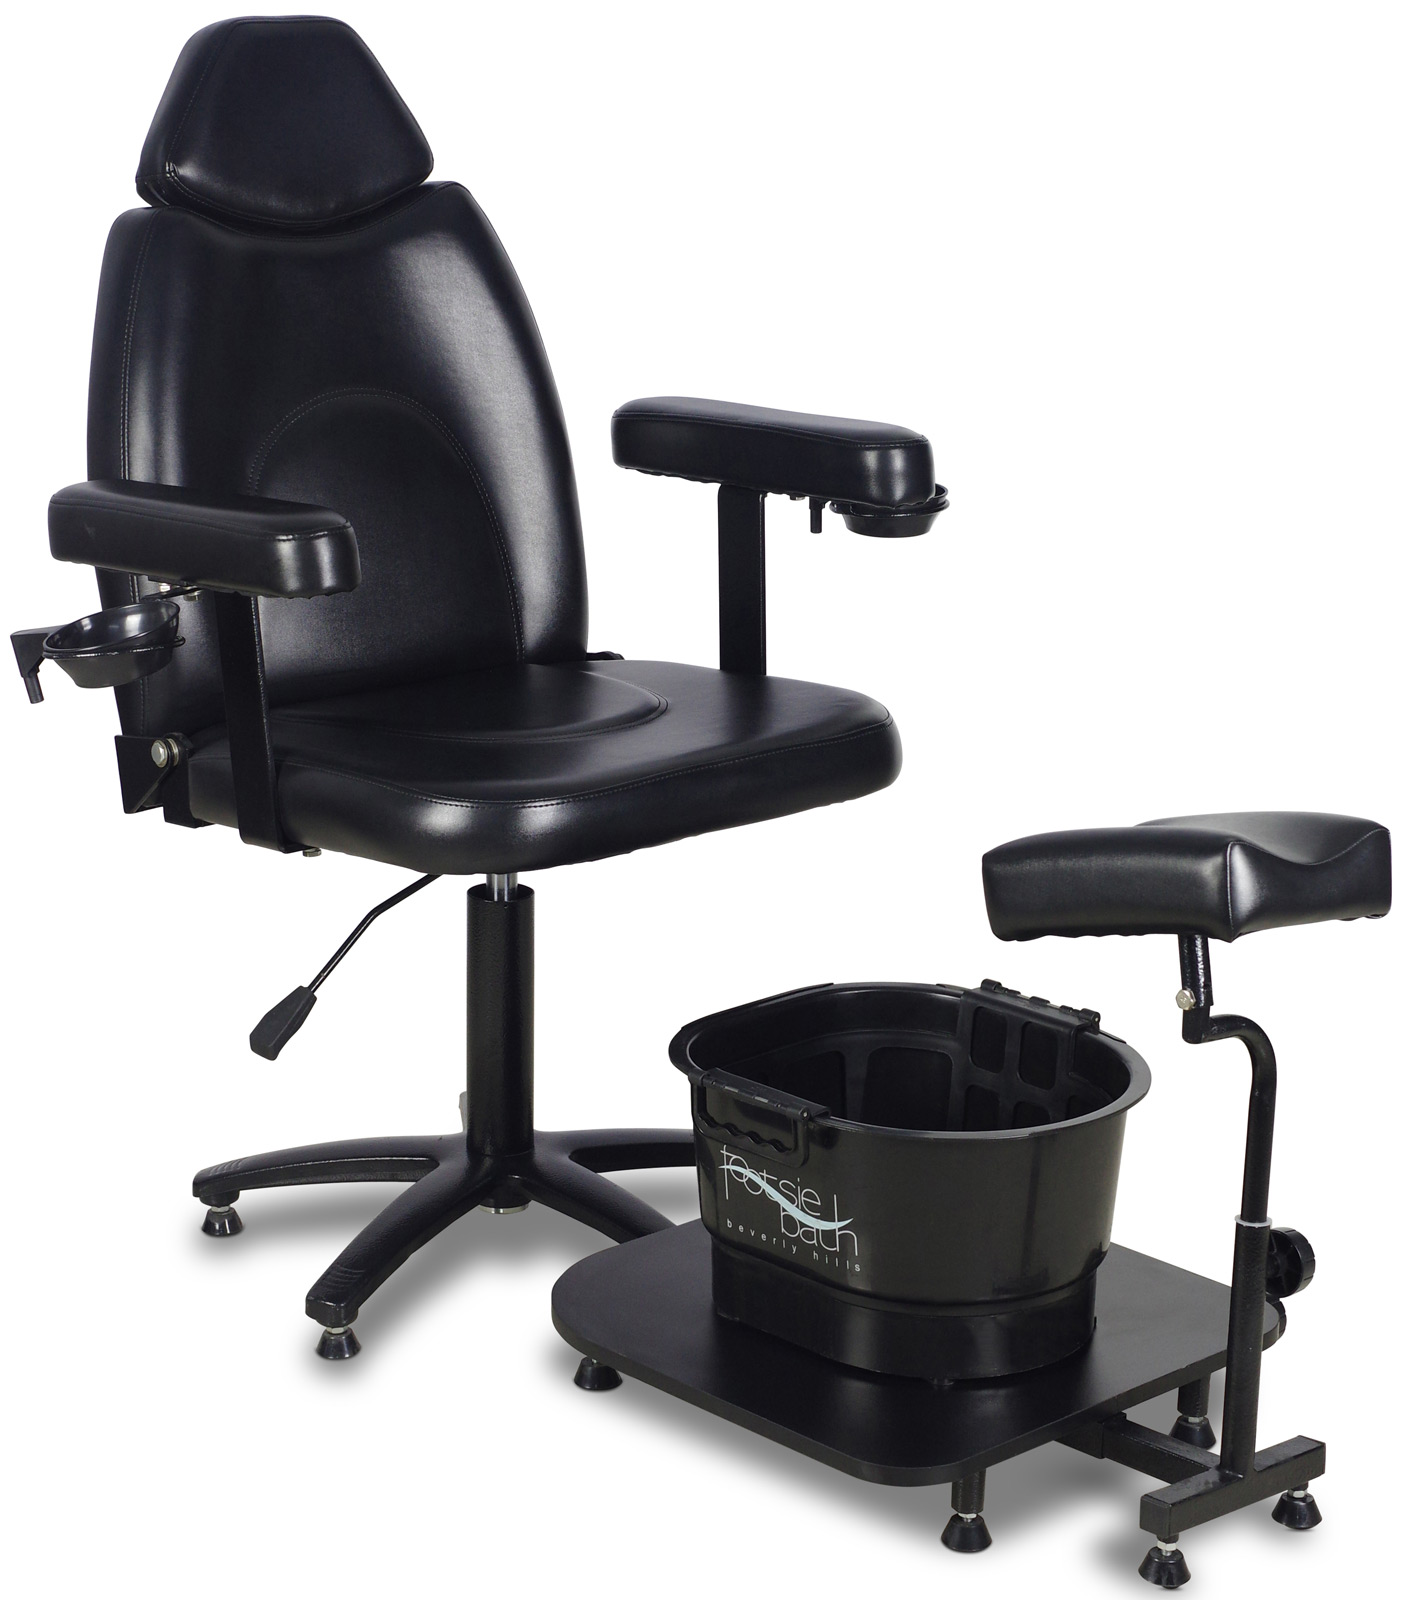 Pedicure Spa Chair Quotzenith Quot Pedicure Foot Spa Station Chair Ebay